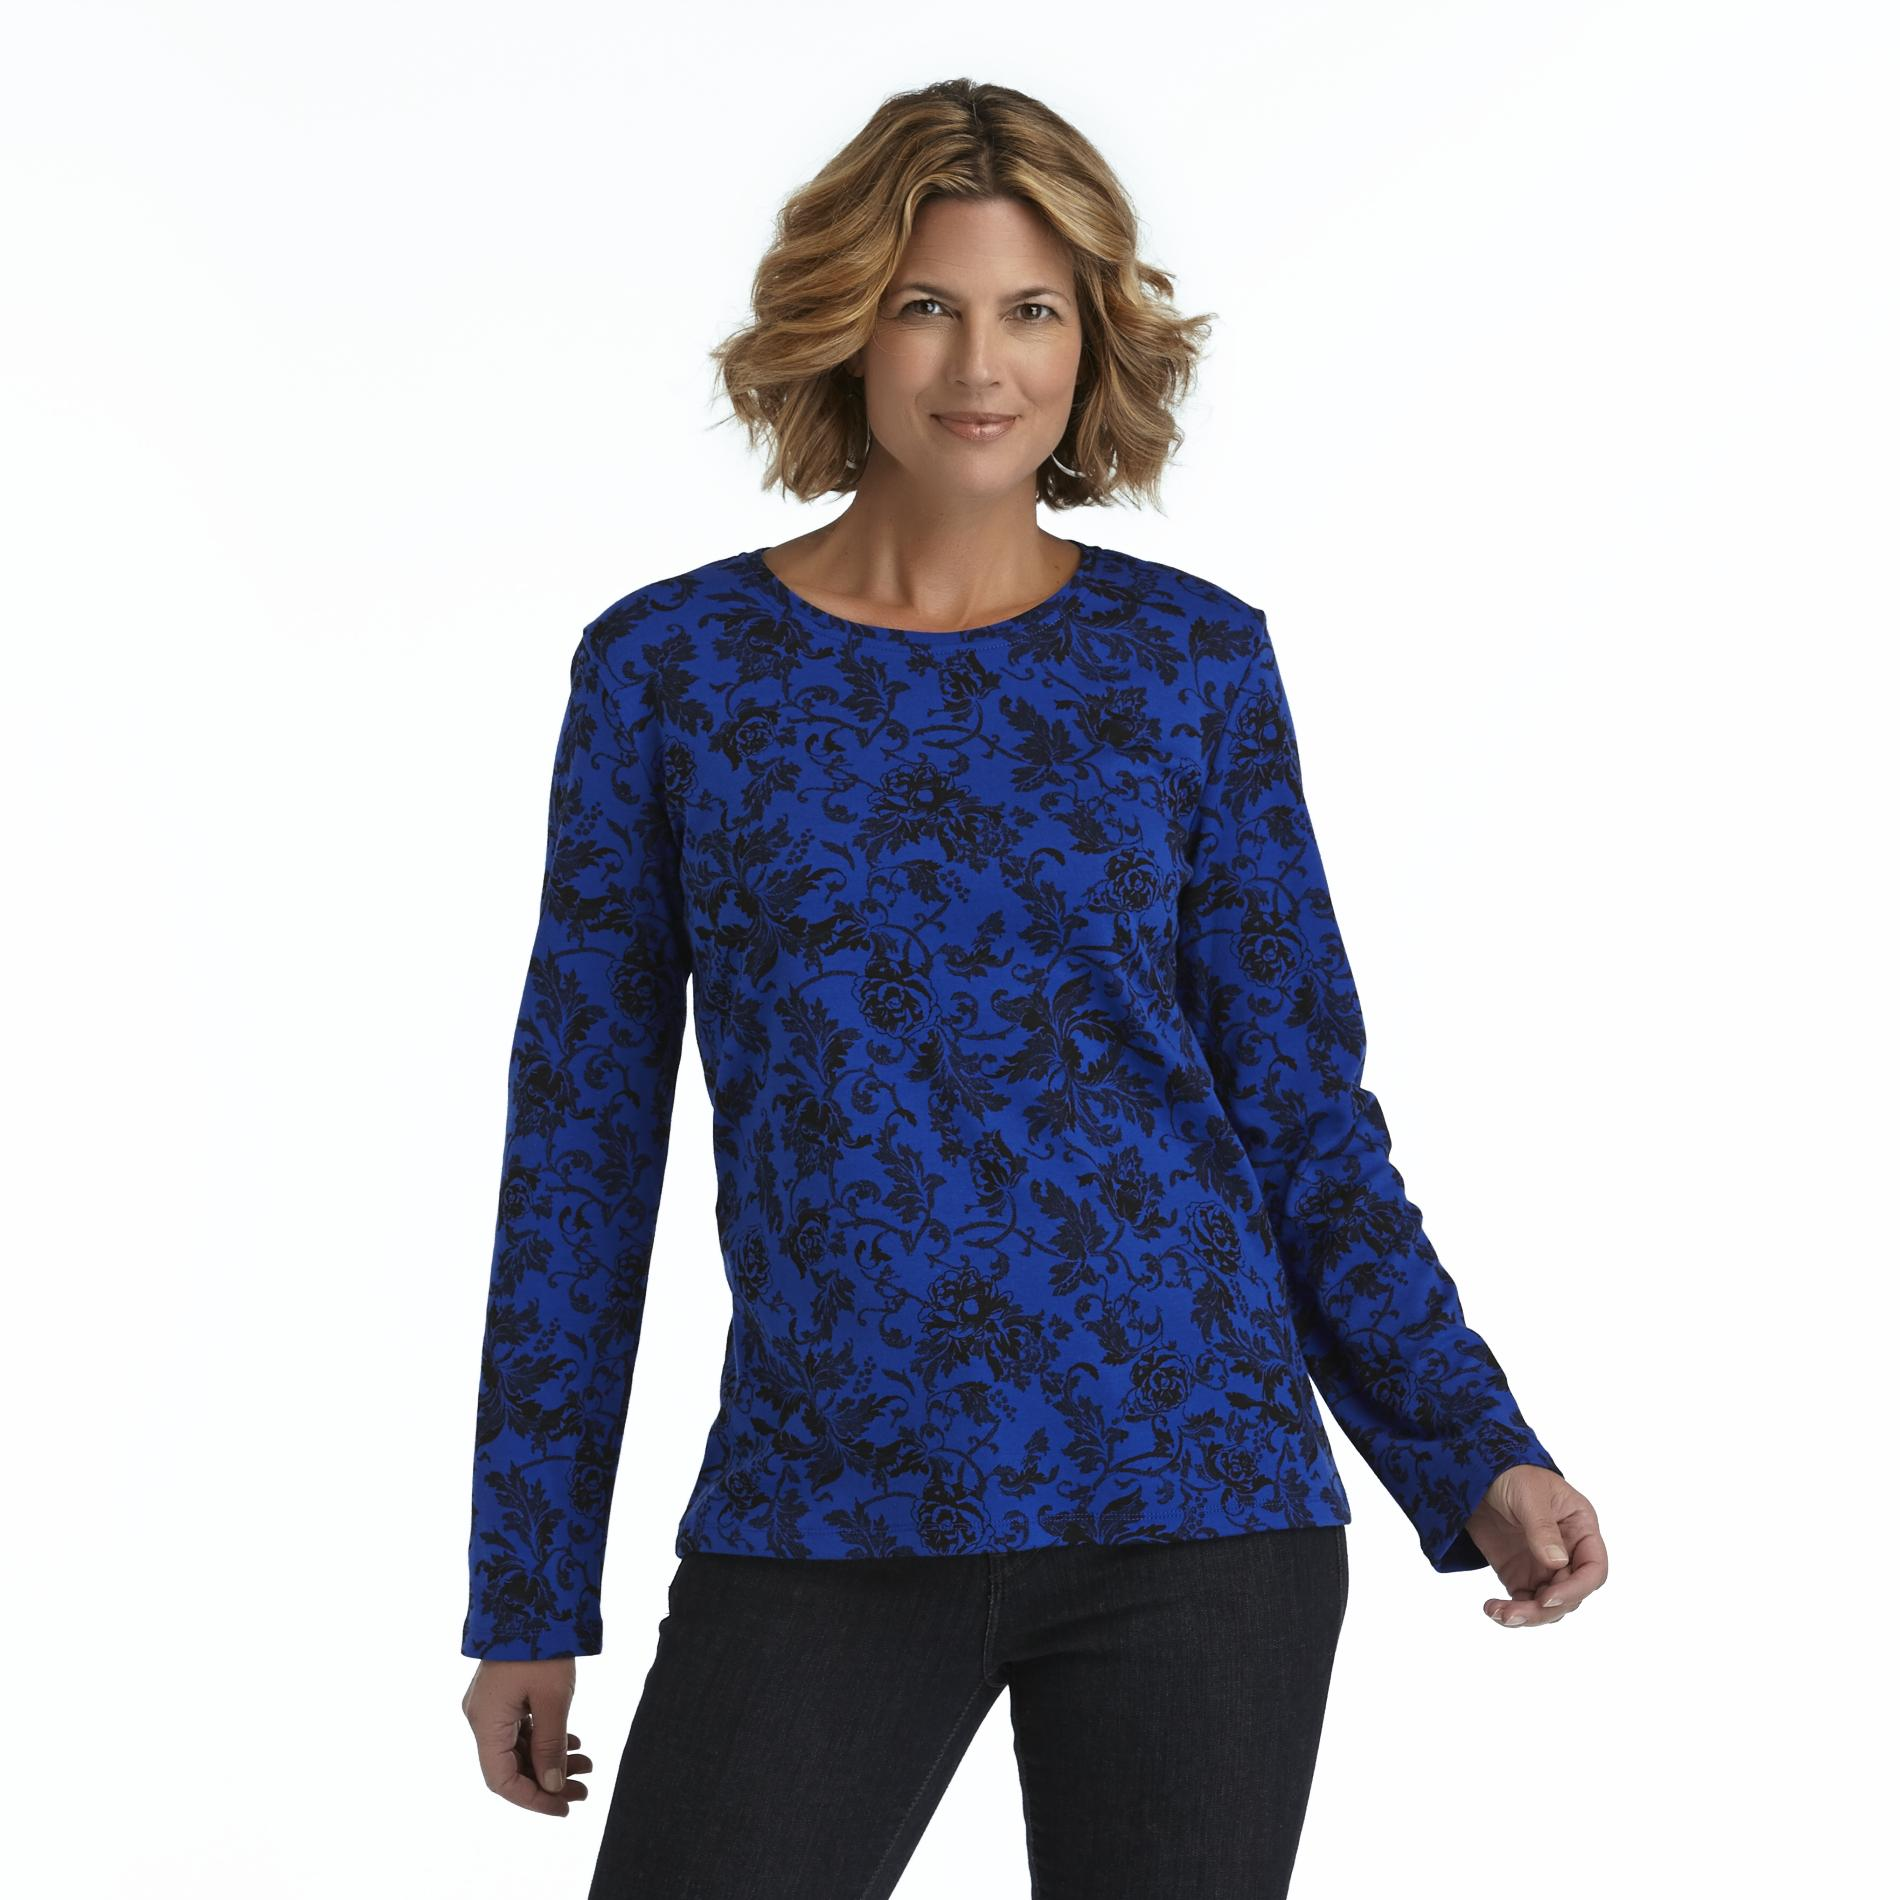 Laura Scott Women's Long-Sleeve T-Shirt - Floral & Paisley at Sears.com